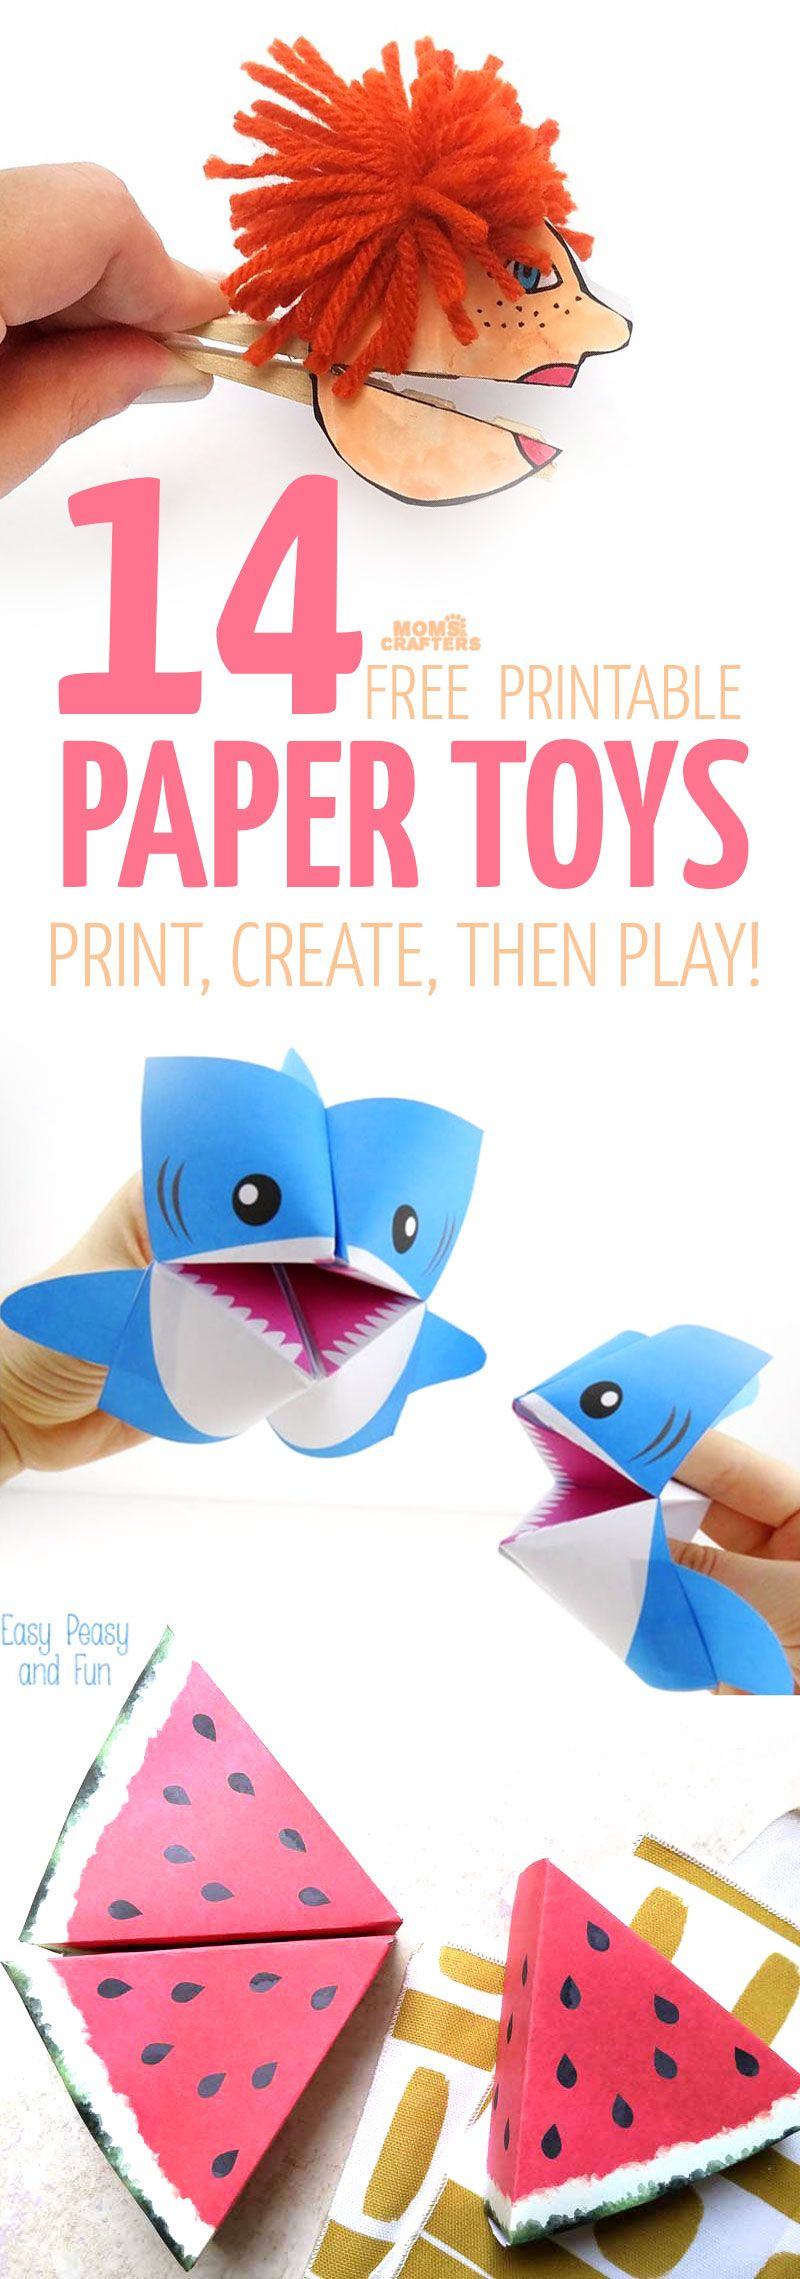 Paper toy templates 14 free printables to craft and play paper toy templates 14 free printables to craft and play jeuxipadfo Choice Image